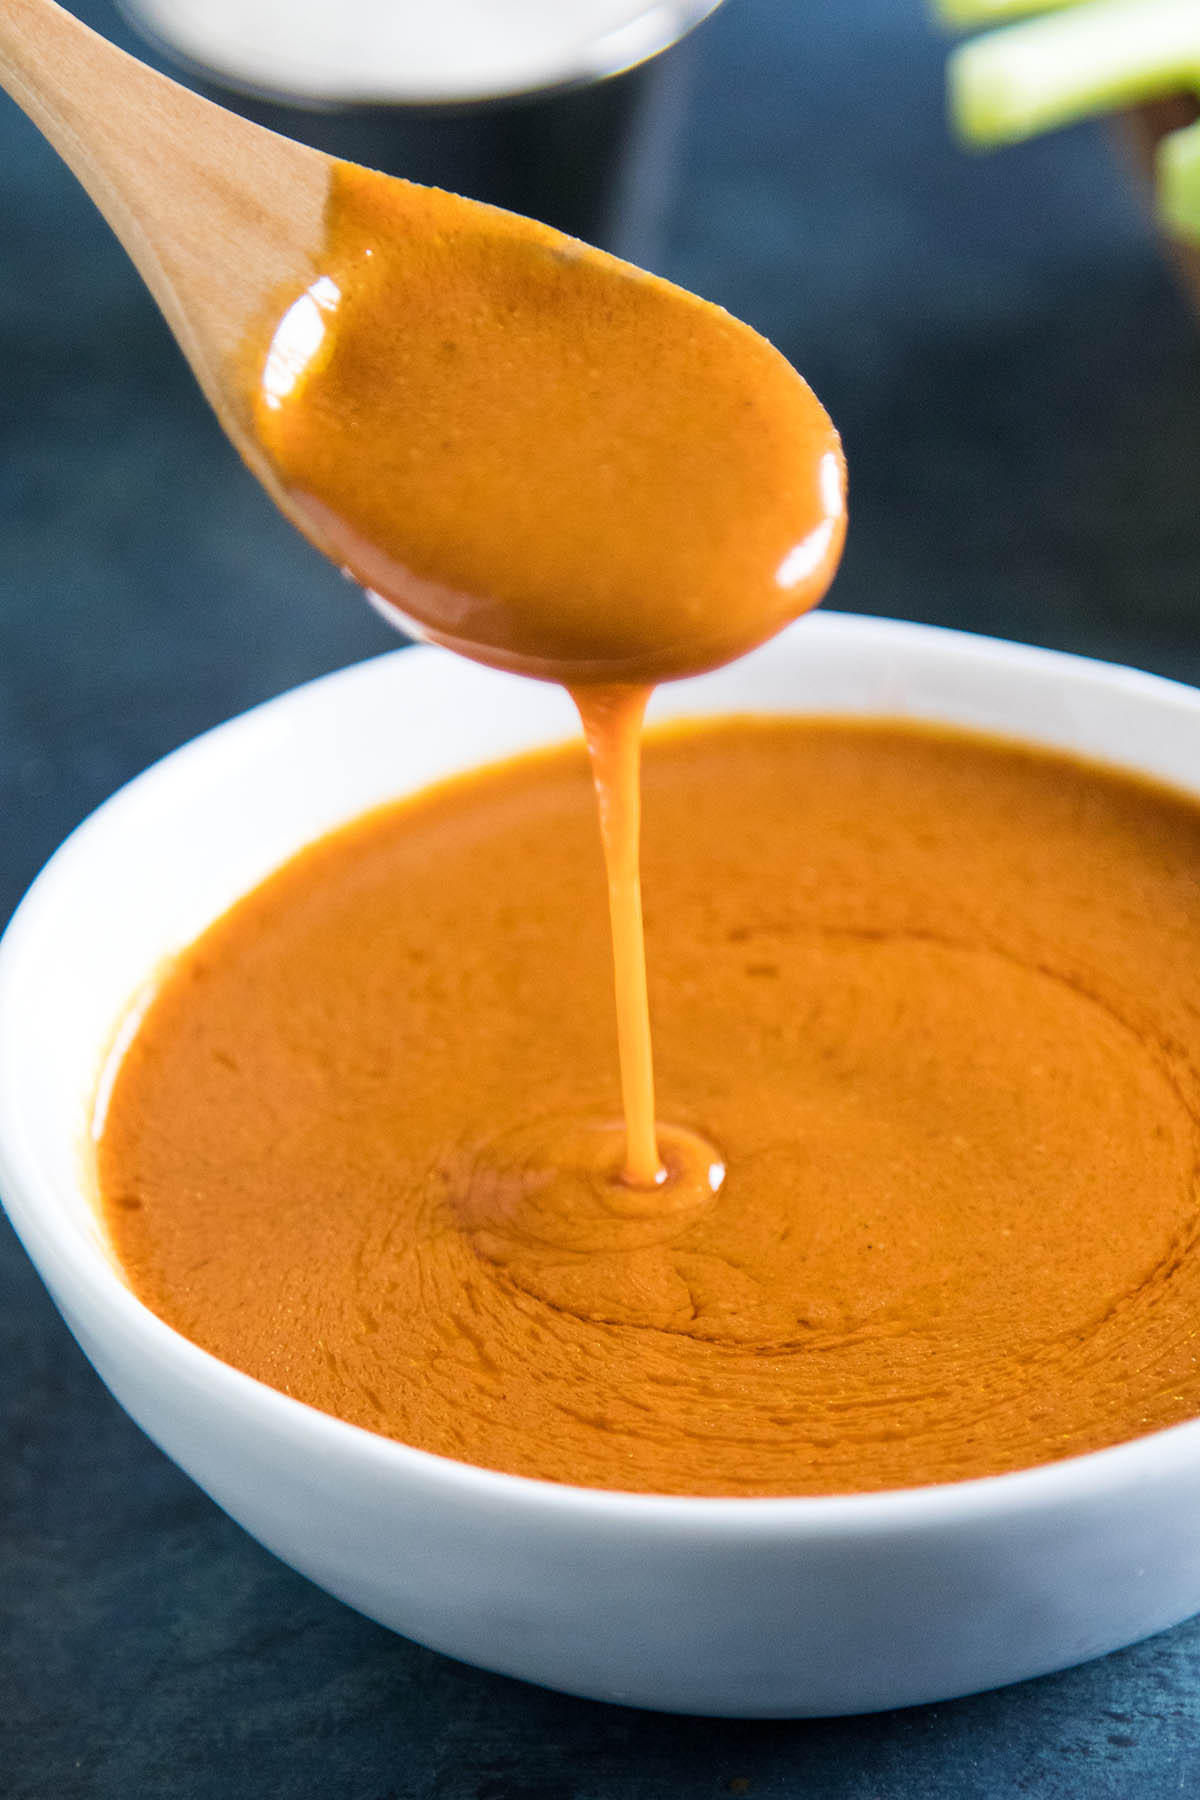 Homemade Buffalo Sauce is so much better than store bought. Get the recipe here.